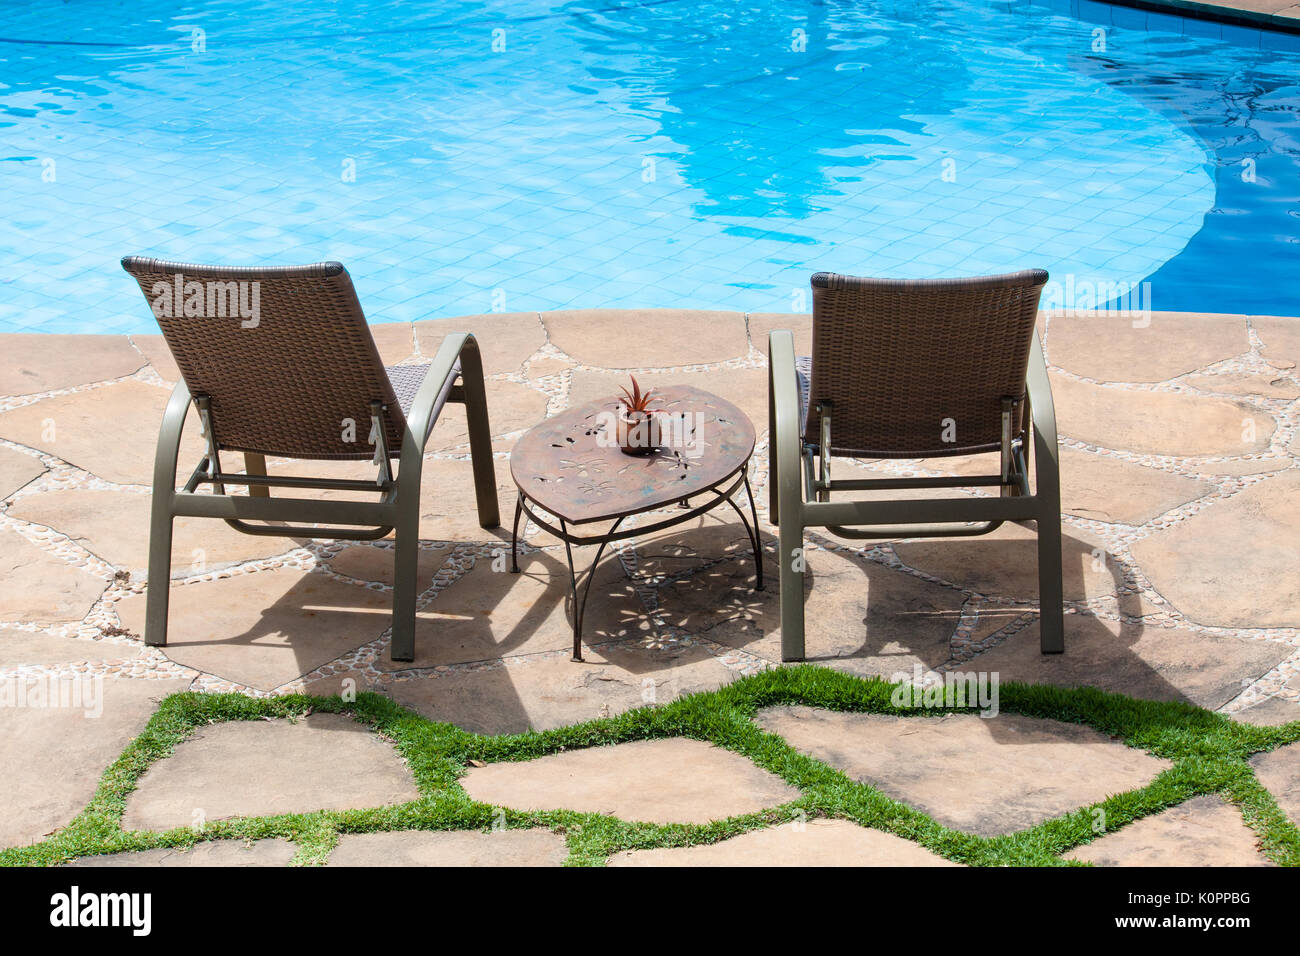 Deck Chairs Swimming Pool Bar Stock Photos Amp Deck Chairs Swimming Pool Bar Stock Images Alamy